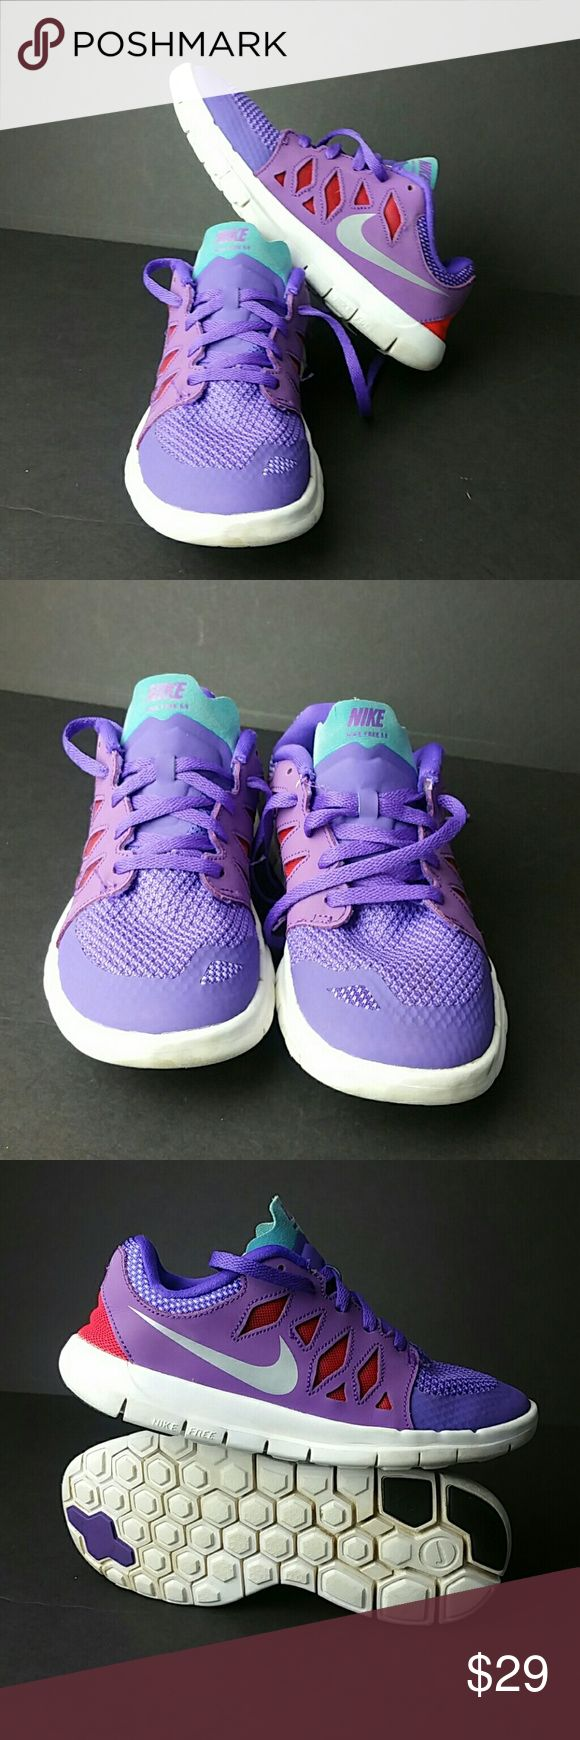 NIKE FREE 5.0 YOUTH SHOES VERY CLEAN INSIDE-OUT   YOUTH SIZE 3Y BIG KIDS   SKE # LT NIKE Shoes Sneakers